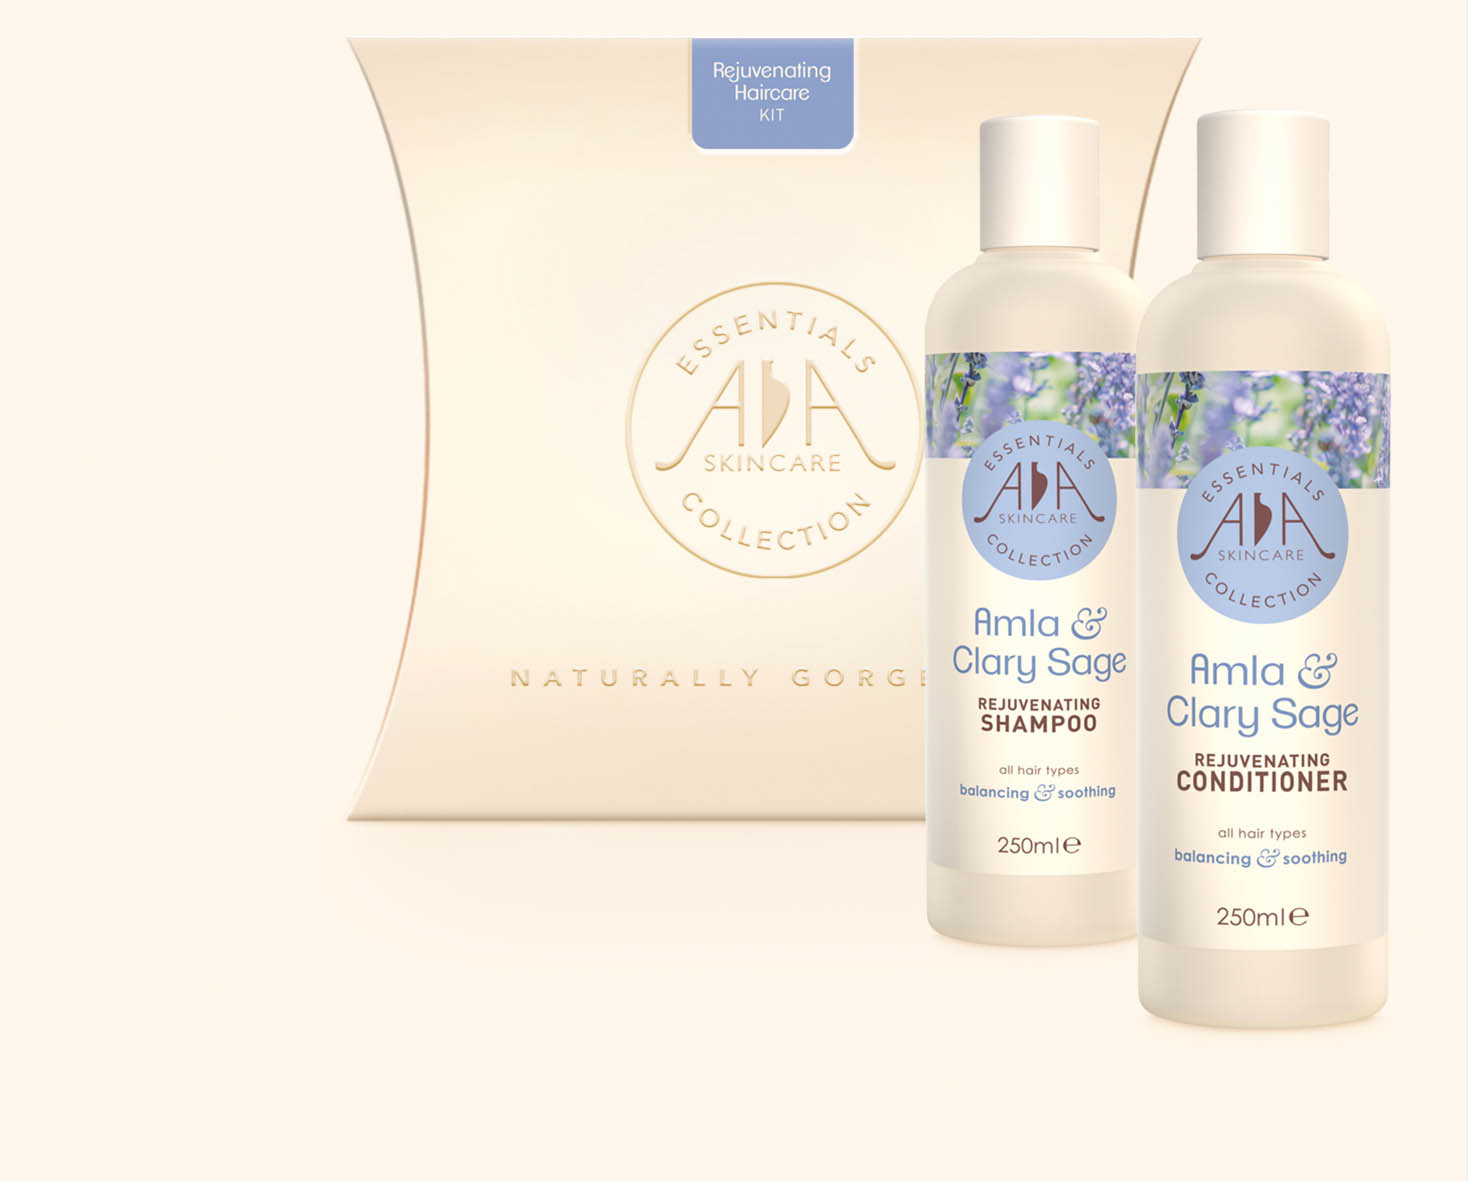 Rejuvenating Haircare Kit - AA Skincare